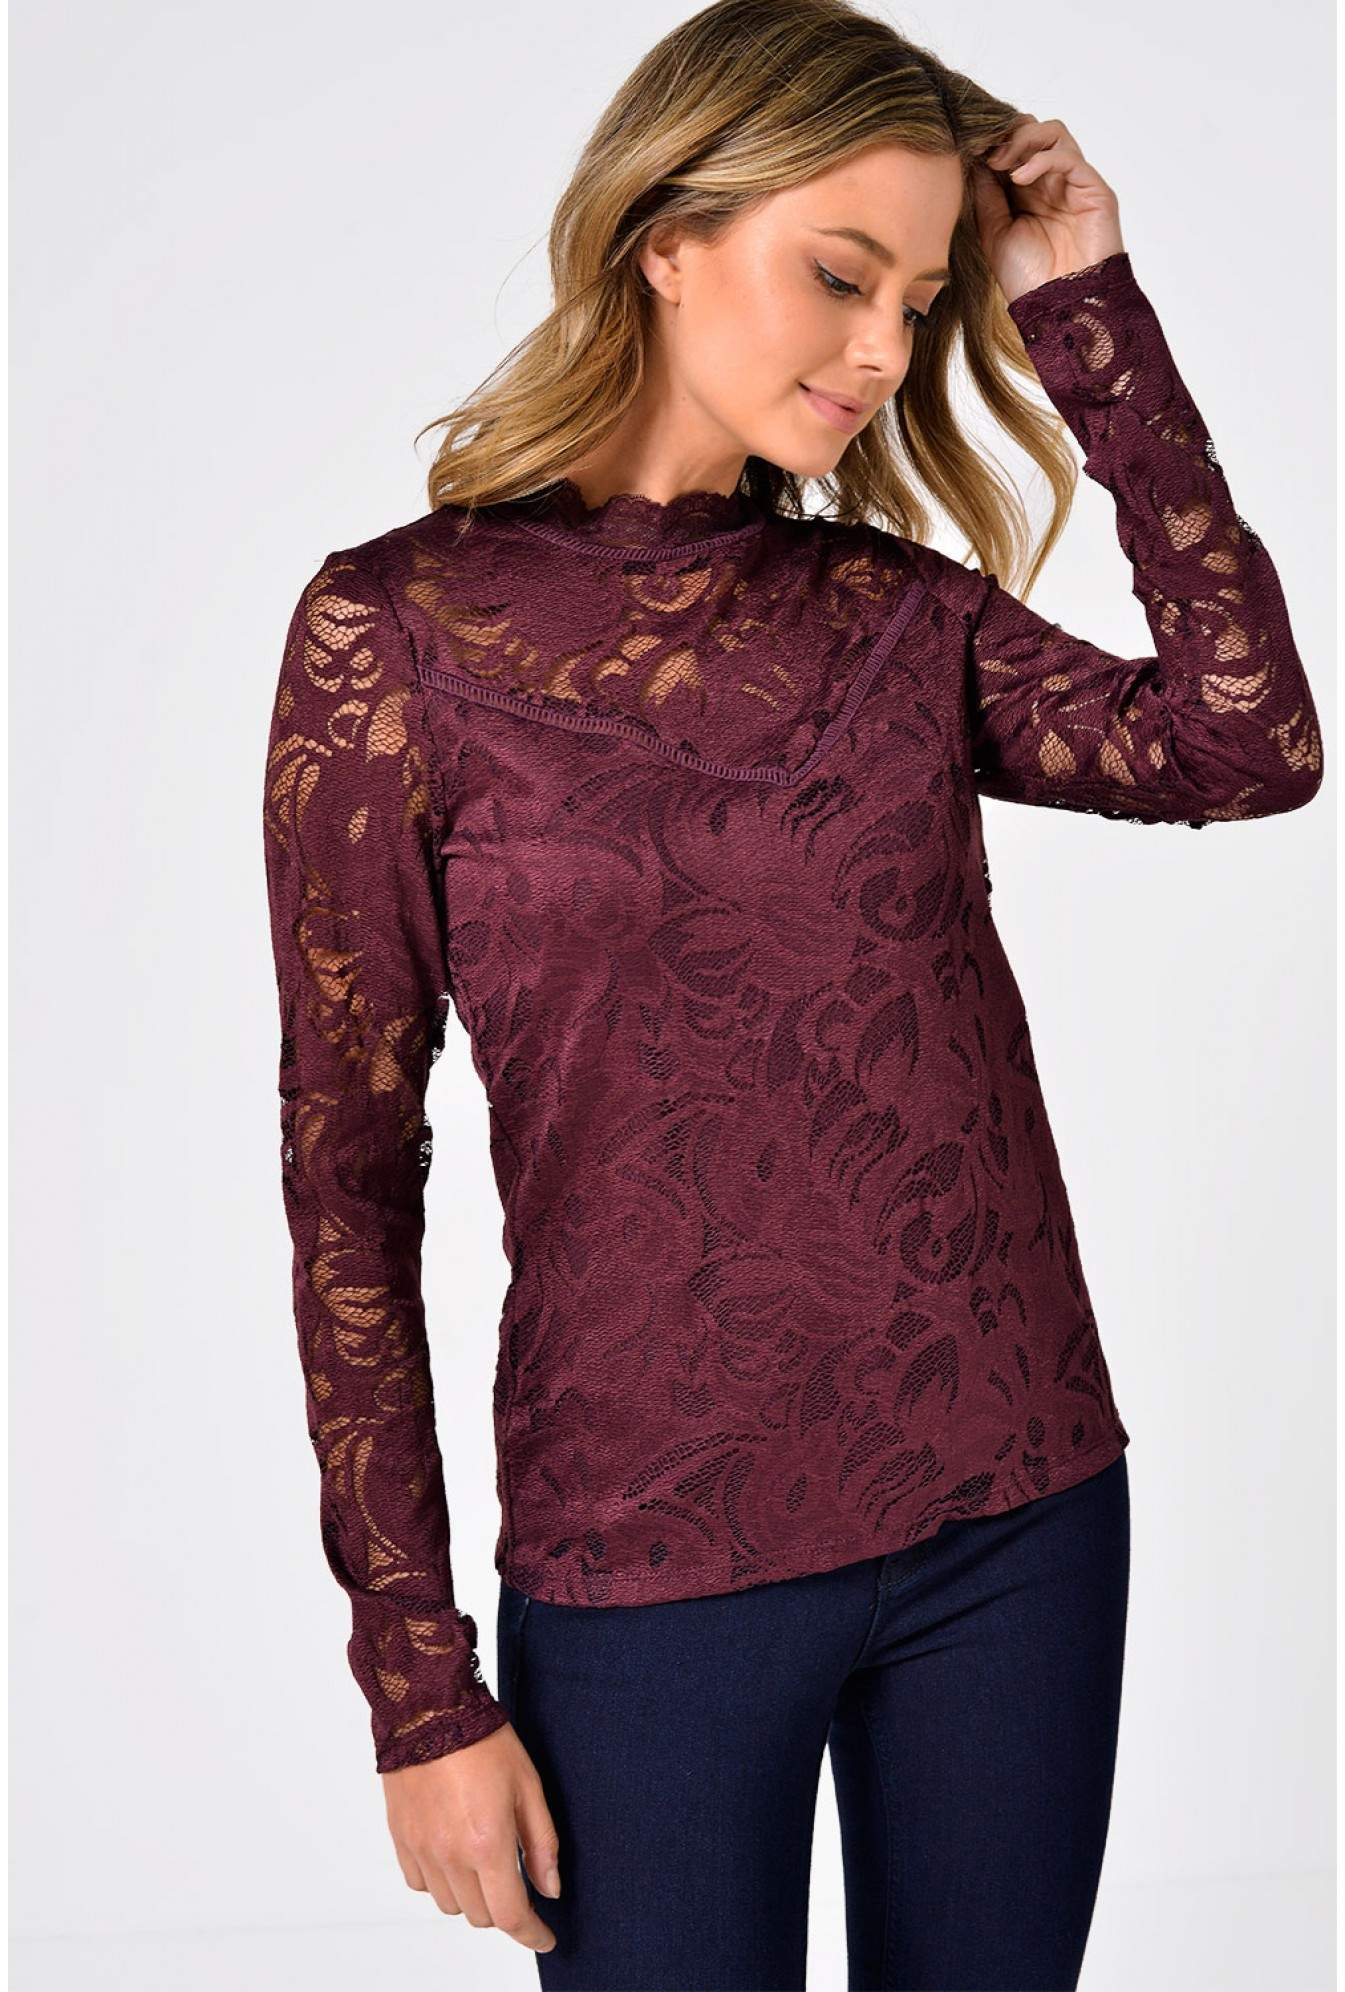 0e4074072a01c More Views. Stasia Lace Top ...